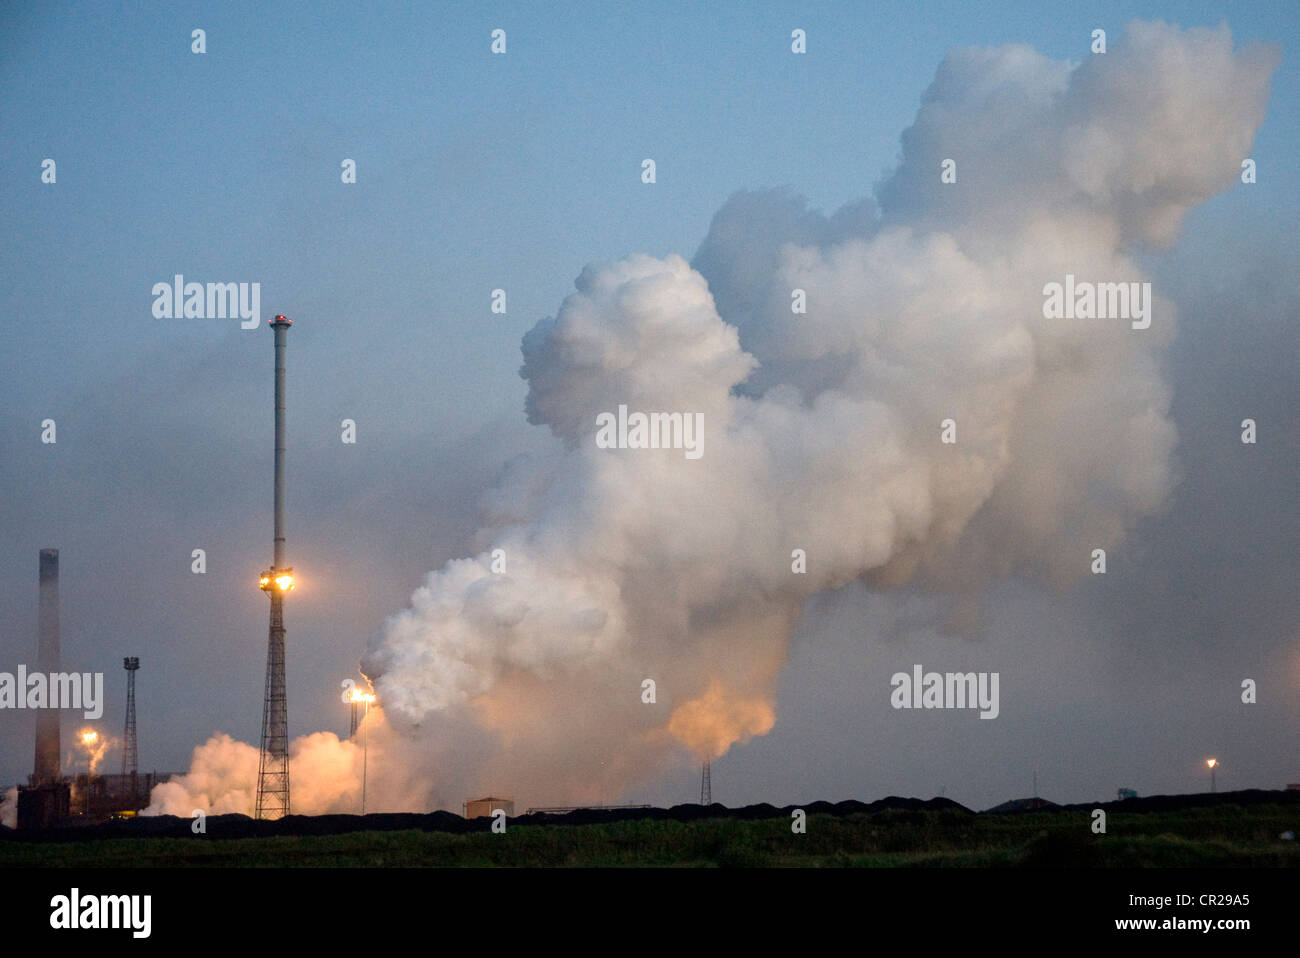 Steam from coke ovens at SSI blast furnace, Redcar. - Stock Image